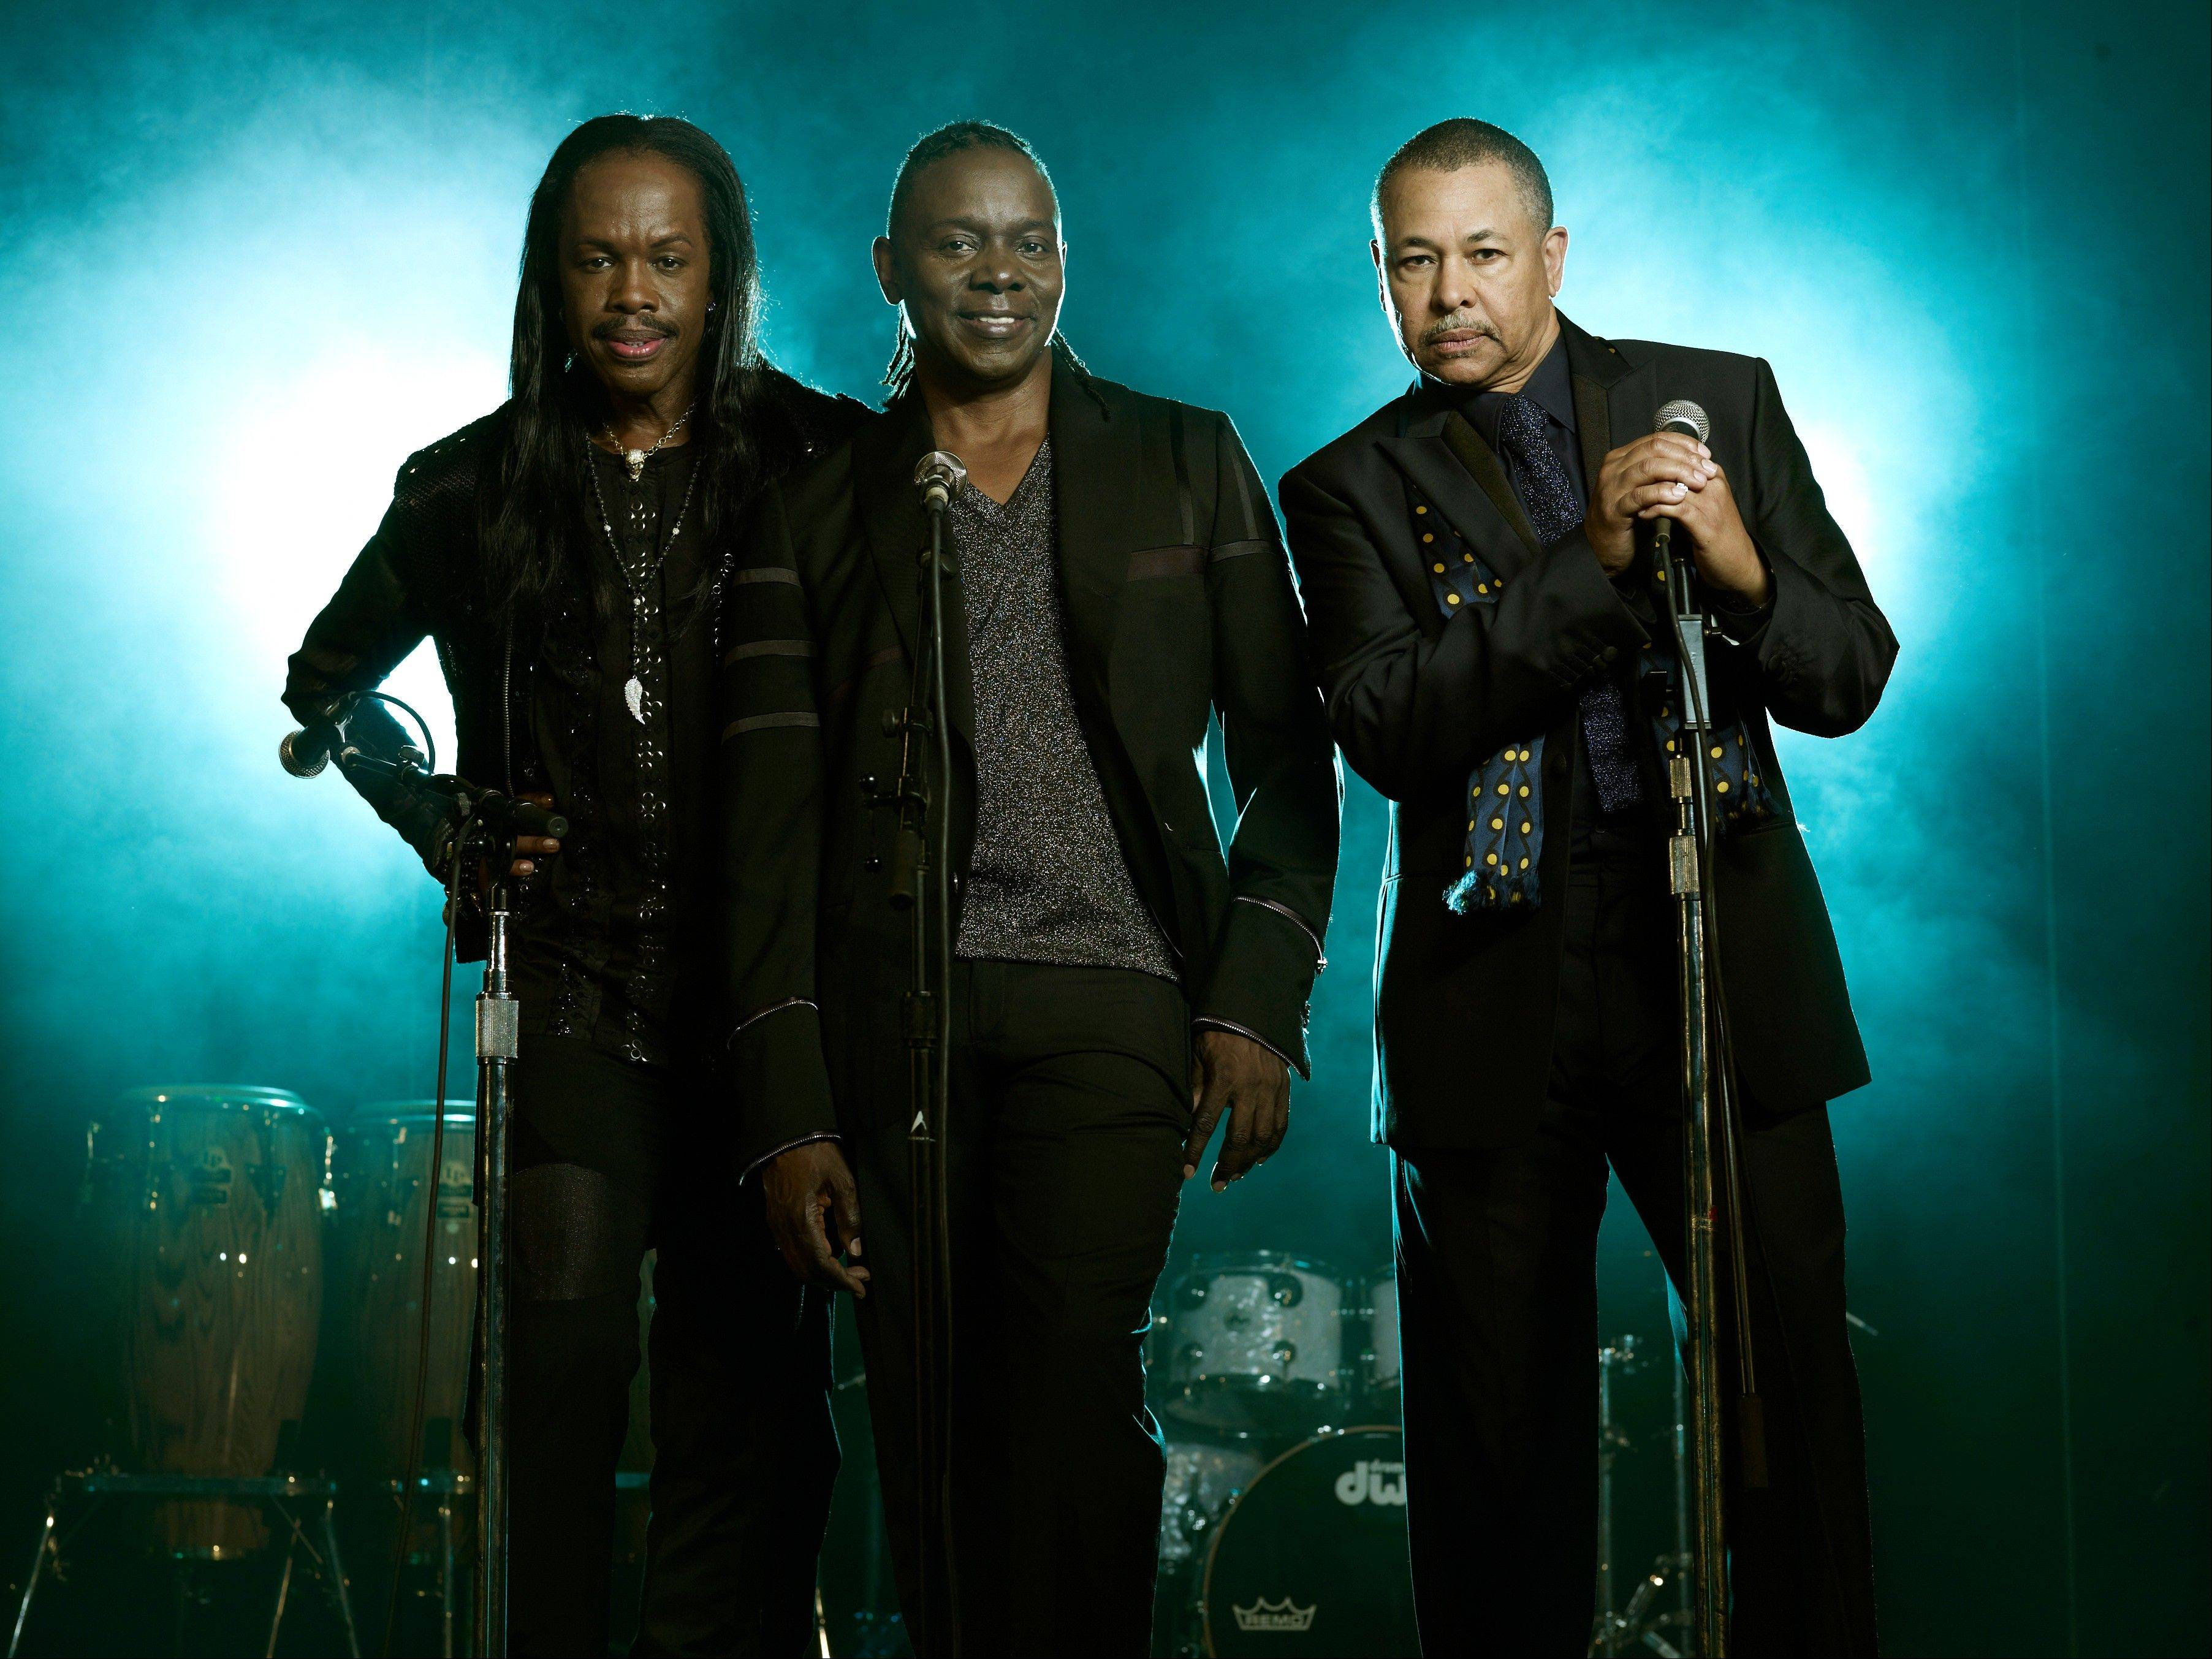 Earth, Wind & Fire � Verdine White, left, Philip Bailey and Ralph Johnson � will release their first album in eight years called �Now, Then & Forever� on Sept. 10.